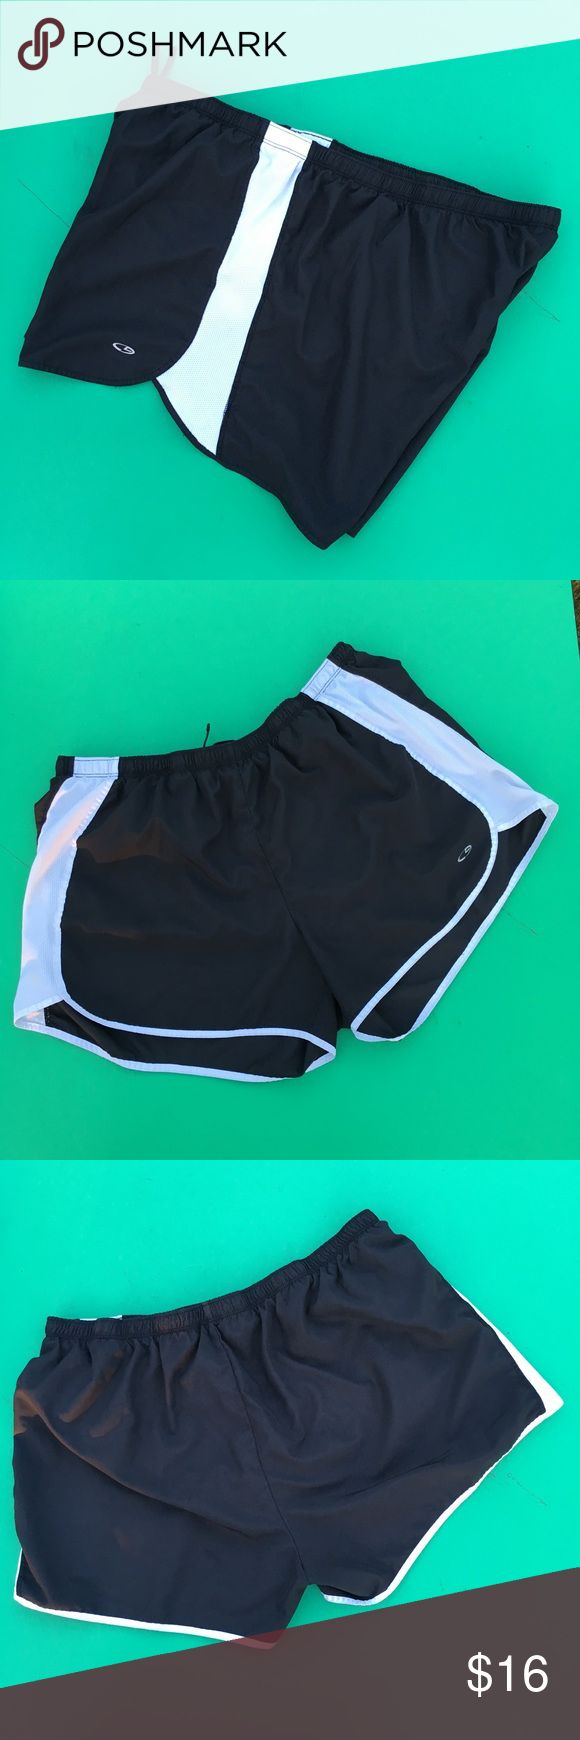 "Champion Sport Shorts Ladies XXL (waist 36.5"") Champion Sport shorts. Wear these no matter what your doing. Top of waist to bottom of hem 13"". Liner w/ key pocket. White sides are mesh for comfort and breath ability. Waist is elastic w/ draw string.     Just like New No stains, snags or damage Non smoking environment   Not the right size ,color or style you're looking for check out Molly's closet  Thanks for Looking Molly  M448/W.25 Champion Shorts"